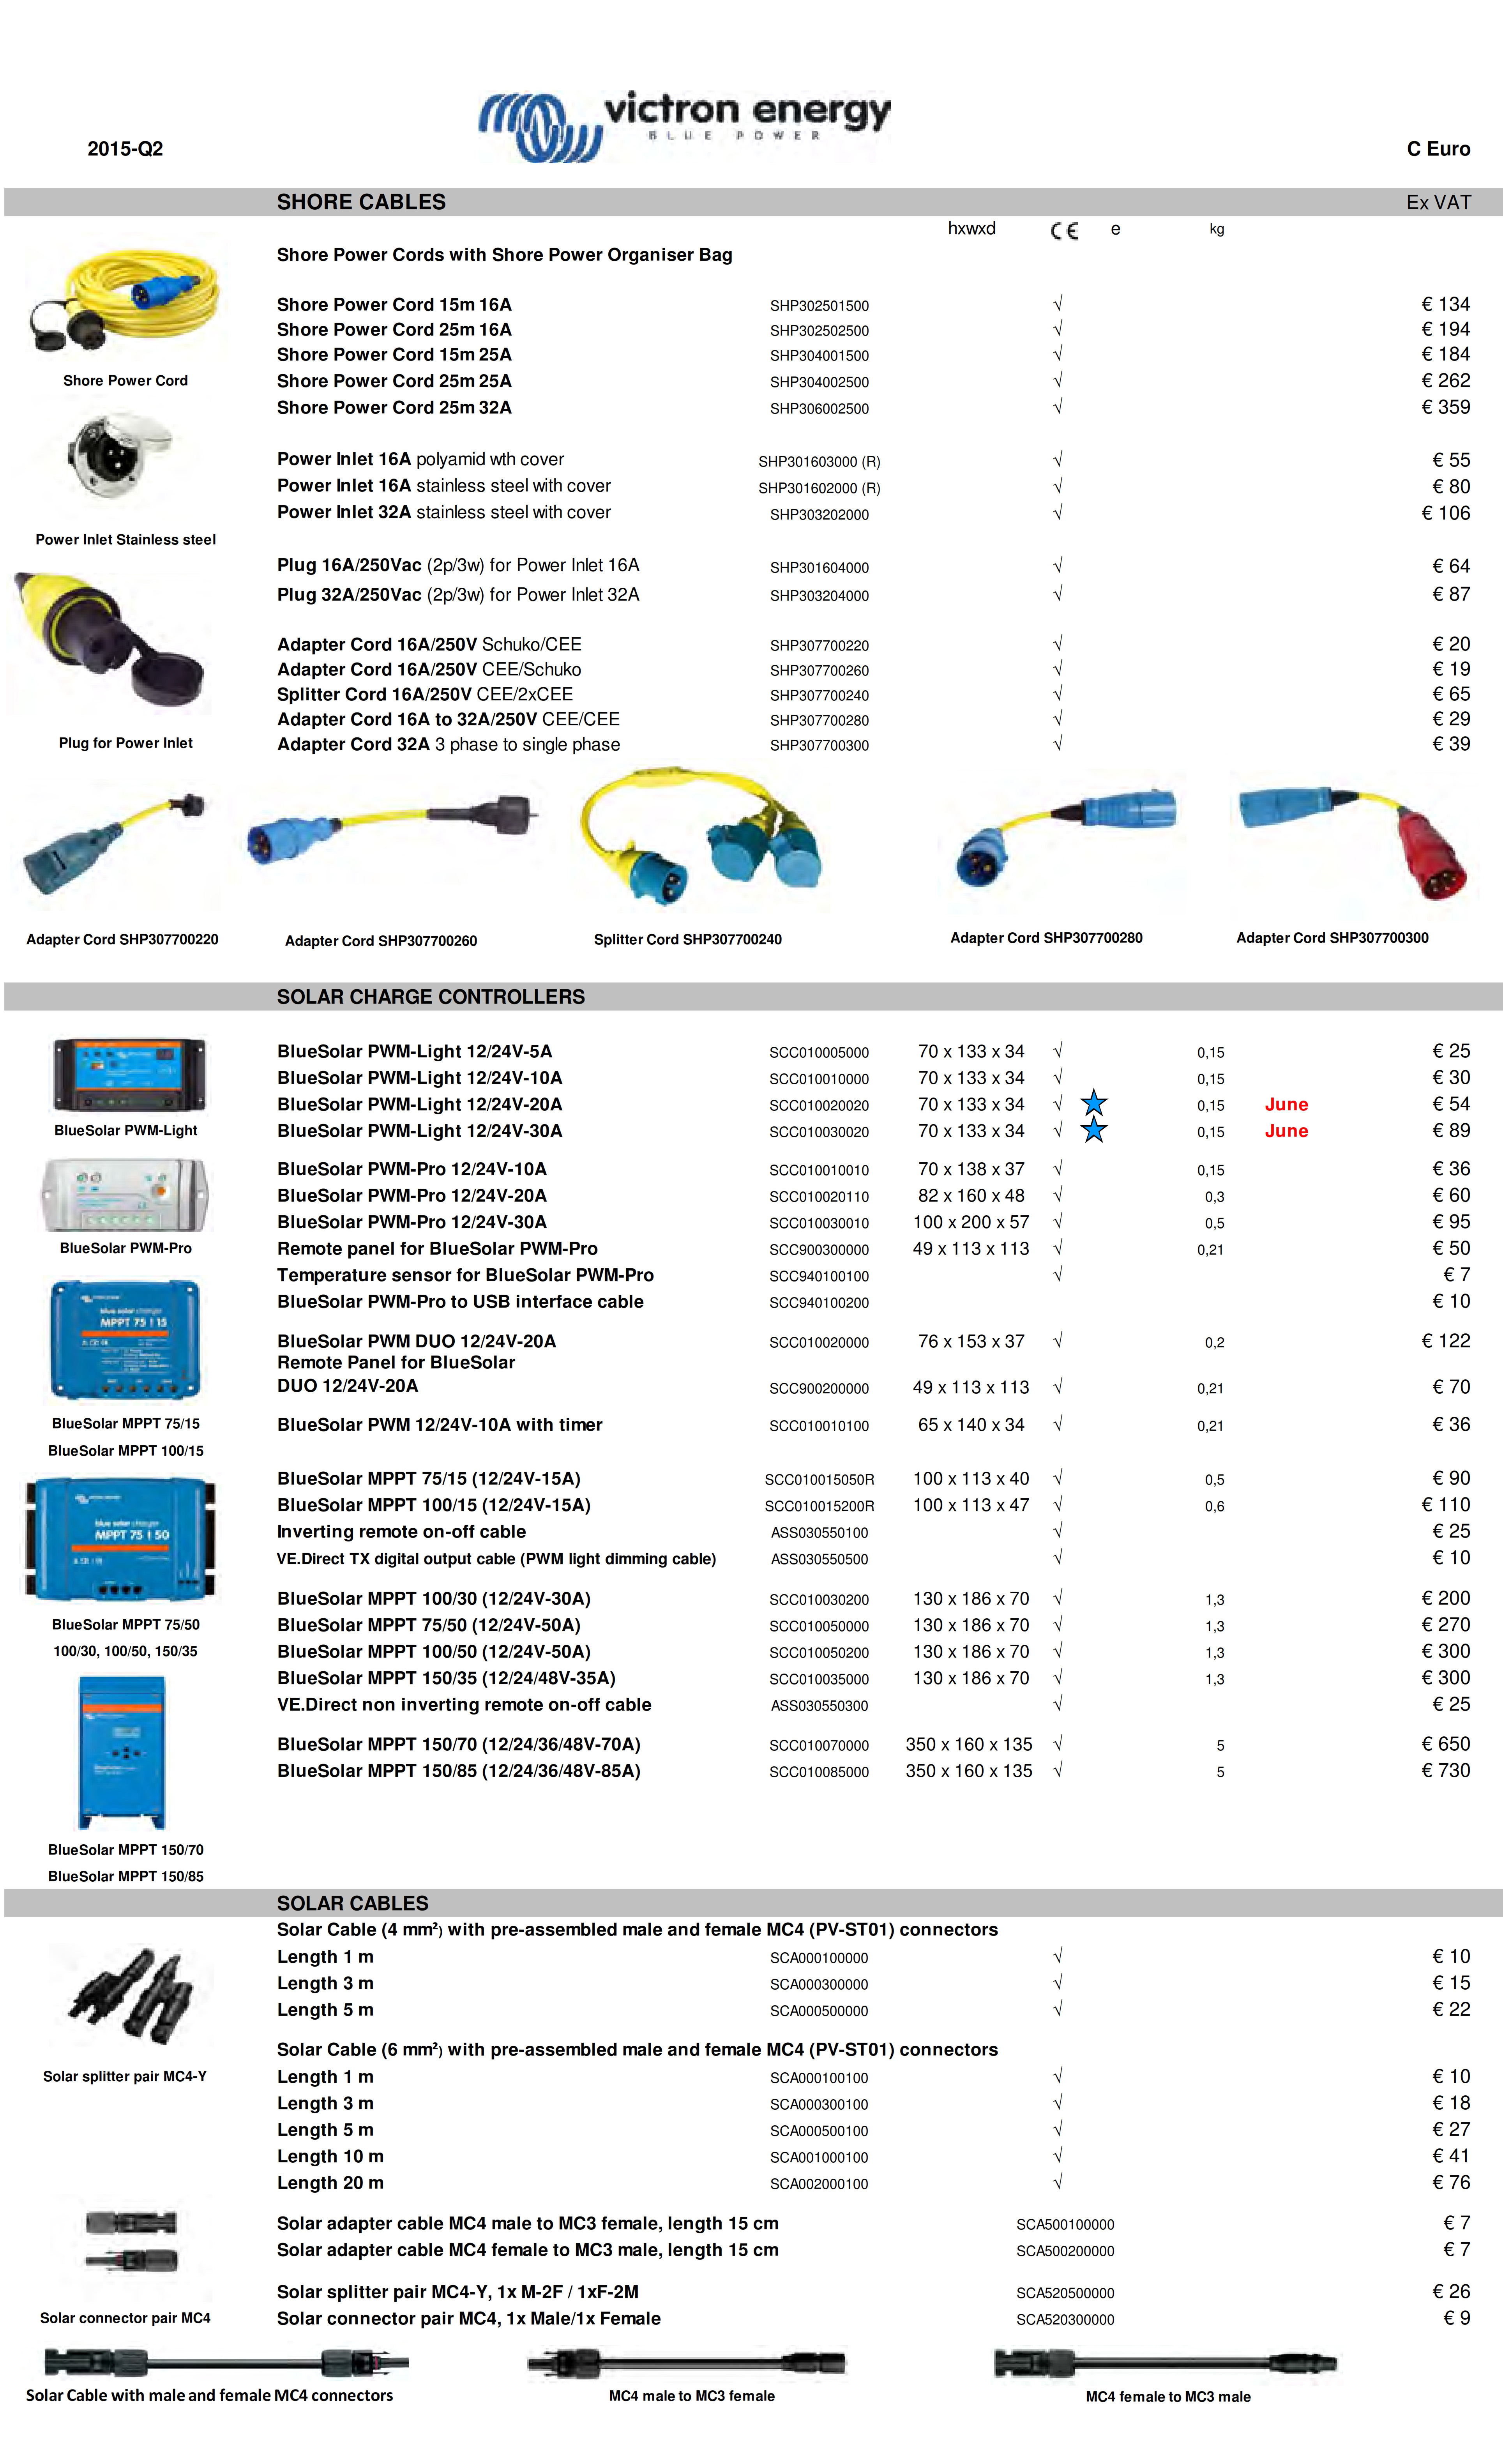 SHORE CABLES Ex VAT Shore Power Cords with Shore Power Organiser Bag hxwxd e kg Shore Power Cord 15m 16A SHP302501500 √ € 134 Shore Power Cord 25m 16A SHP302502500 √ € 194 Shore Power Cord 15m 25A SHP304001500 √ € 184 Shore Power Cord 25m 25A SHP304002500 √ € 262 Shore Power Cord 25m 32A SHP306002500 √ € 359 Power Inlet 16A polyamid wth cover SHP301603000 (R) √ € 55 Power Inlet 16A stainless steel with cover SHP301602000 (R) √ € 80 Power Inlet 32A stainless steel with cover SHP303202000 √ € 106 Plug 16A/250Vac (2p/3w) for Power Inlet 16A SHP301604000 √ € 64 Plug 32A/250Vac (2p/3w) for Power Inlet 32A SHP303204000 √ € 87 Adapter Cord 16A/250V Schuko/CEE SHP307700220 √ € 20 Adapter Cord 16A/250V CEE/Schuko SHP307700260 √ € 19 Splitter Cord 16A/250V CEE/2xCEE SHP307700240 √ € 65 Adapter Cord 16A to 32A/250V CEE/CEE SHP307700280 √ € 29 Adapter Cord 32A 3 phase to single phase SHP307700300 √ € 39 Splitter Cord SHP307700240 Adapter Cord SHP307700260 SOLAR CHARGE CONTROLLERS BlueSolar PWM-Light 12/24V-5A SCC010005000 70 x 133 x 34 √ 0,15 € 25 BlueSolar PWM-Light 12/24V-10A SCC010010000 70 x 133 x 34 √ 0,15 € 30 BlueSolar PWM-Light 12/24V-20A SCC010020020 70 x 133 x 34 √ 0,15 June € 54 BlueSolar PWM-Light 12/24V-30A SCC010030020 70 x 133 x 34 √ 0,15 June € 89 BlueSolar PWM-Pro 12/24V-10A SCC010010010 70 x 138 x 37 √ 0,15 € 36 BlueSolar PWM-Pro 12/24V-20A SCC010020110 82 x 160 x 48 √ 0,3 € 60 BlueSolar PWM-Pro 12/24V-30A SCC010030010 100 x 200 x 57 √ 0,5 € 95 Remote panel for BlueSolar PWM-Pro SCC900300000 49 x 113 x 113 √ 0,21 € 50 Temperature sensor for BlueSolar PWM-Pro SCC940100100 √ € 7 BlueSolar PWM-Pro to USB interface cable SCC940100200 € 10 BlueSolar PWM DUO 12/24V-20A SCC010020000 76 x 153 x 37 √ 0,2 € 122 Remote Panel for BlueSolar  DUO 12/24V-20A SCC900200000 49 x 113 x 113 √ 0,21 € 70 BlueSolar PWM 12/24V-10A with timer SCC010010100 65 x 140 x 34 √ 0,21 € 36 BlueSolar MPPT 75/15 (12/24V-15A) SCC010015050R 100 x 113 x 40 √ 0,5 € 90 BlueSolar MPPT 100/15 (12/24V-1